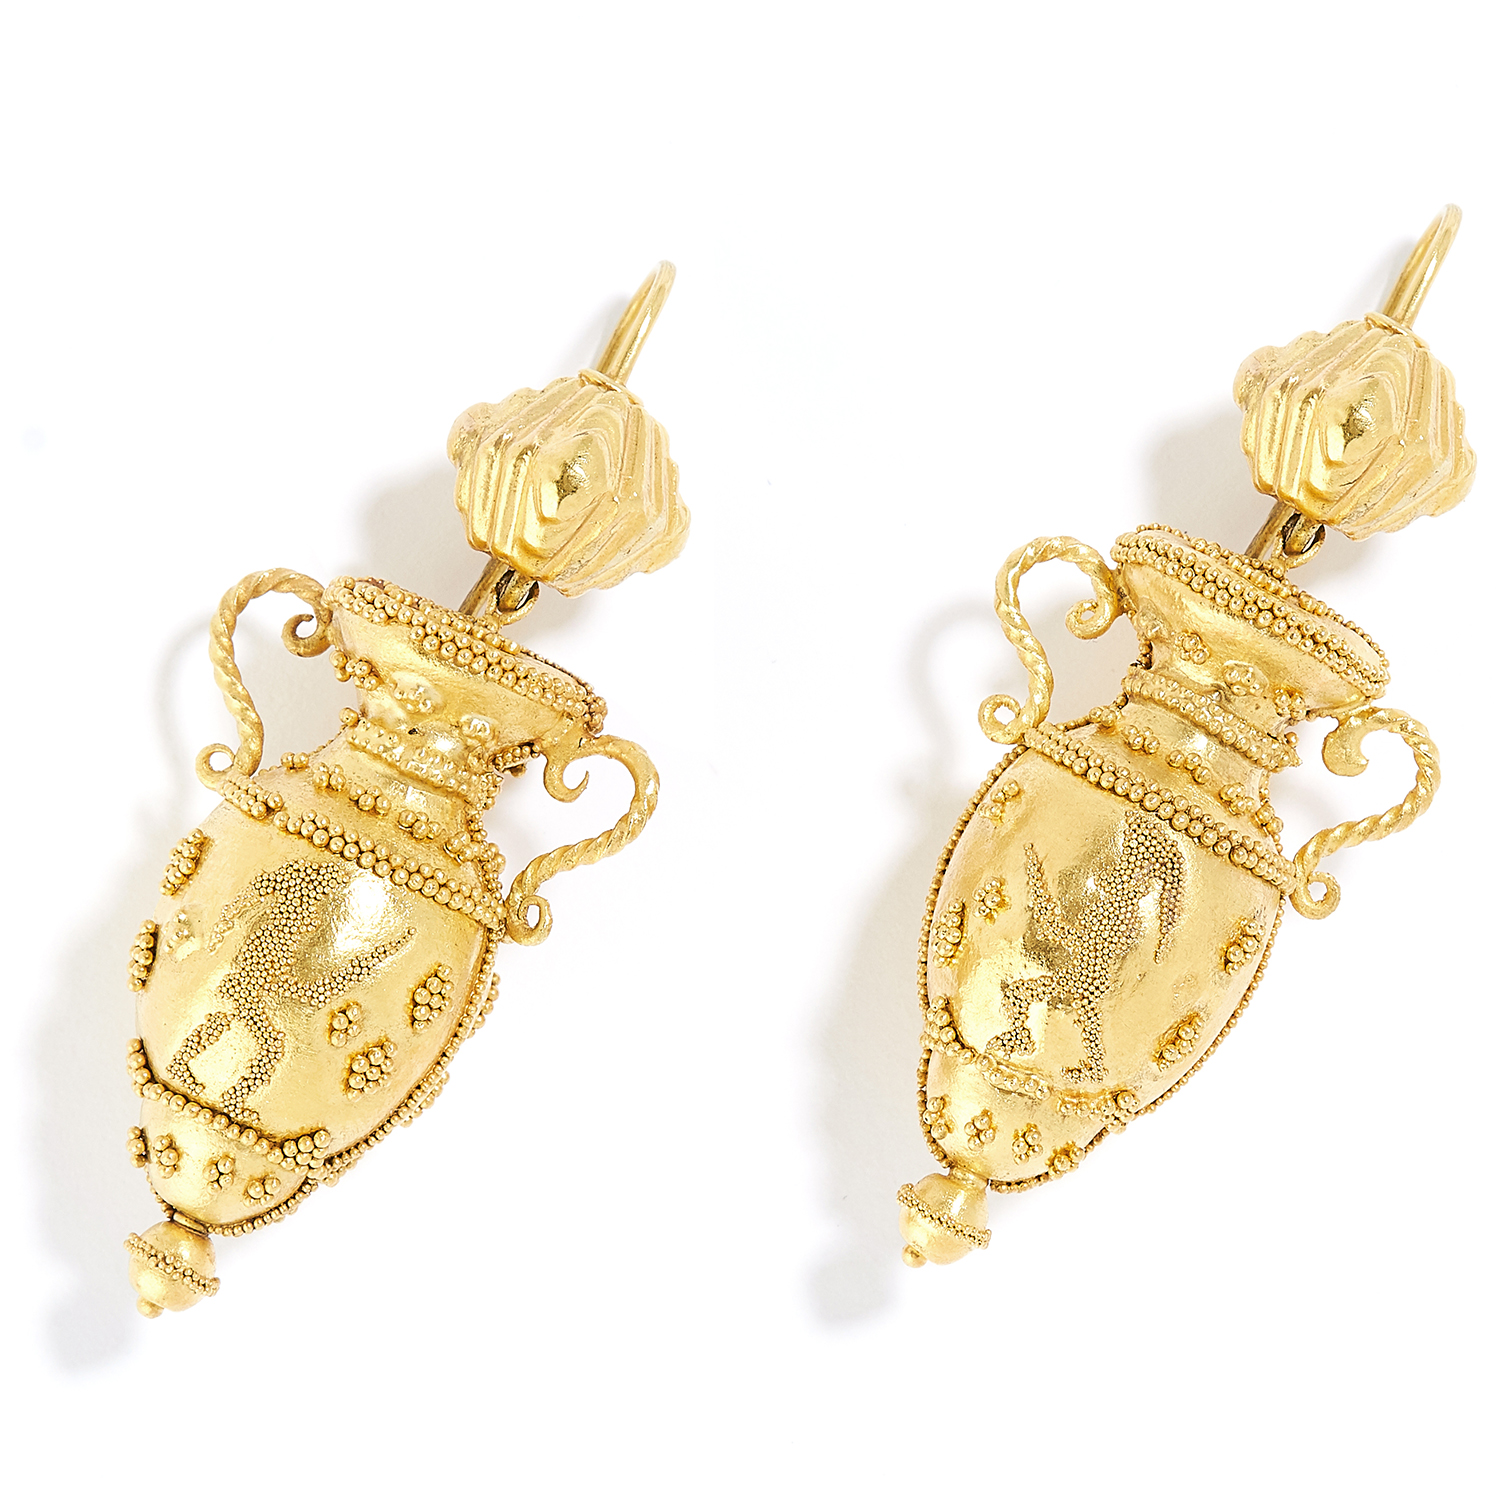 ANTIQUE ETRUSCAN REVIVAL URN EARRINGS in high carat yellow gold, each in form of an urn decorated in